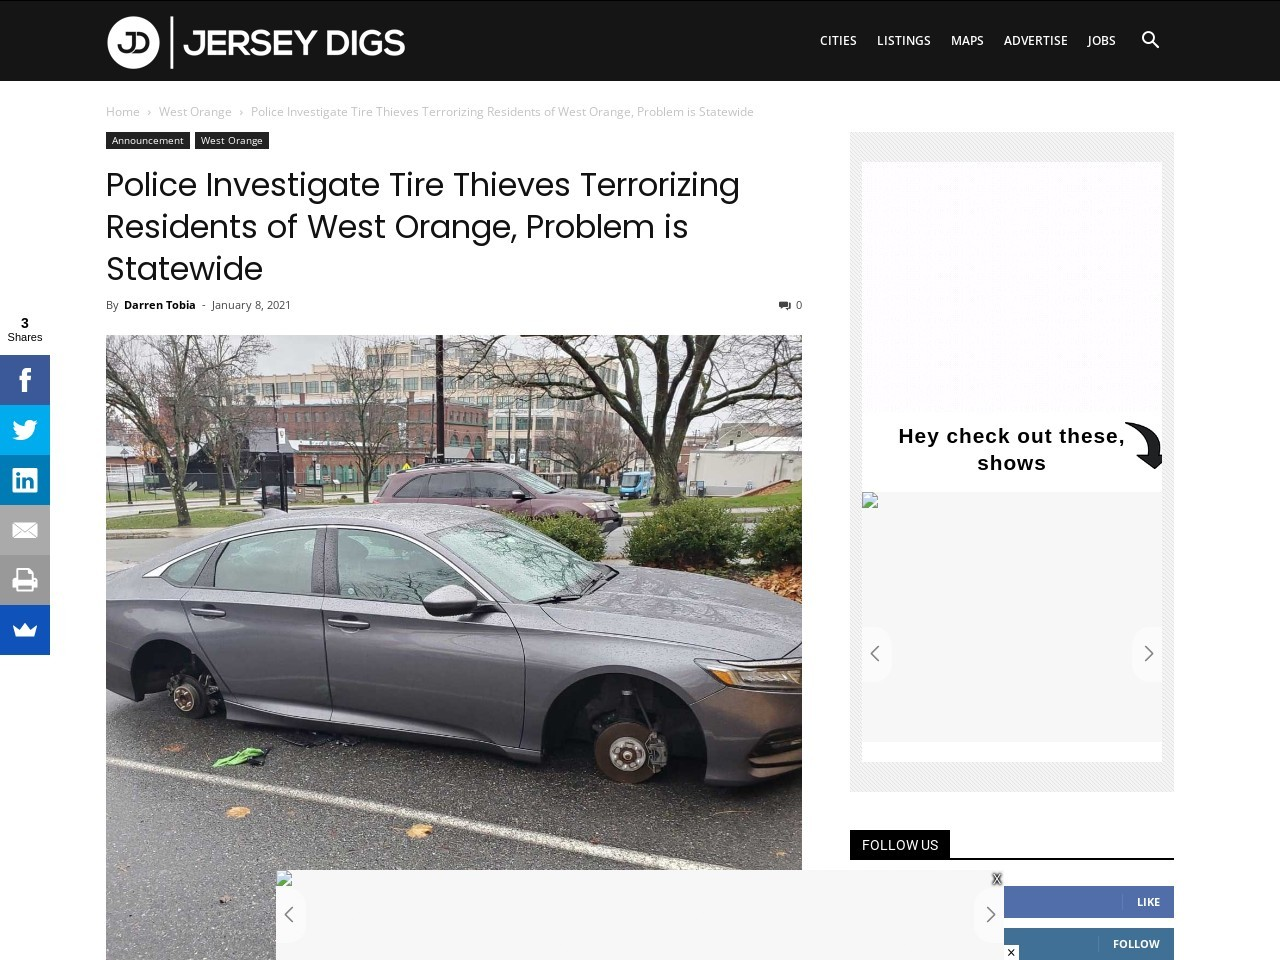 Police Investigate Tire Thieves Terrorizing Residents of West Orange, Problem is Statewide